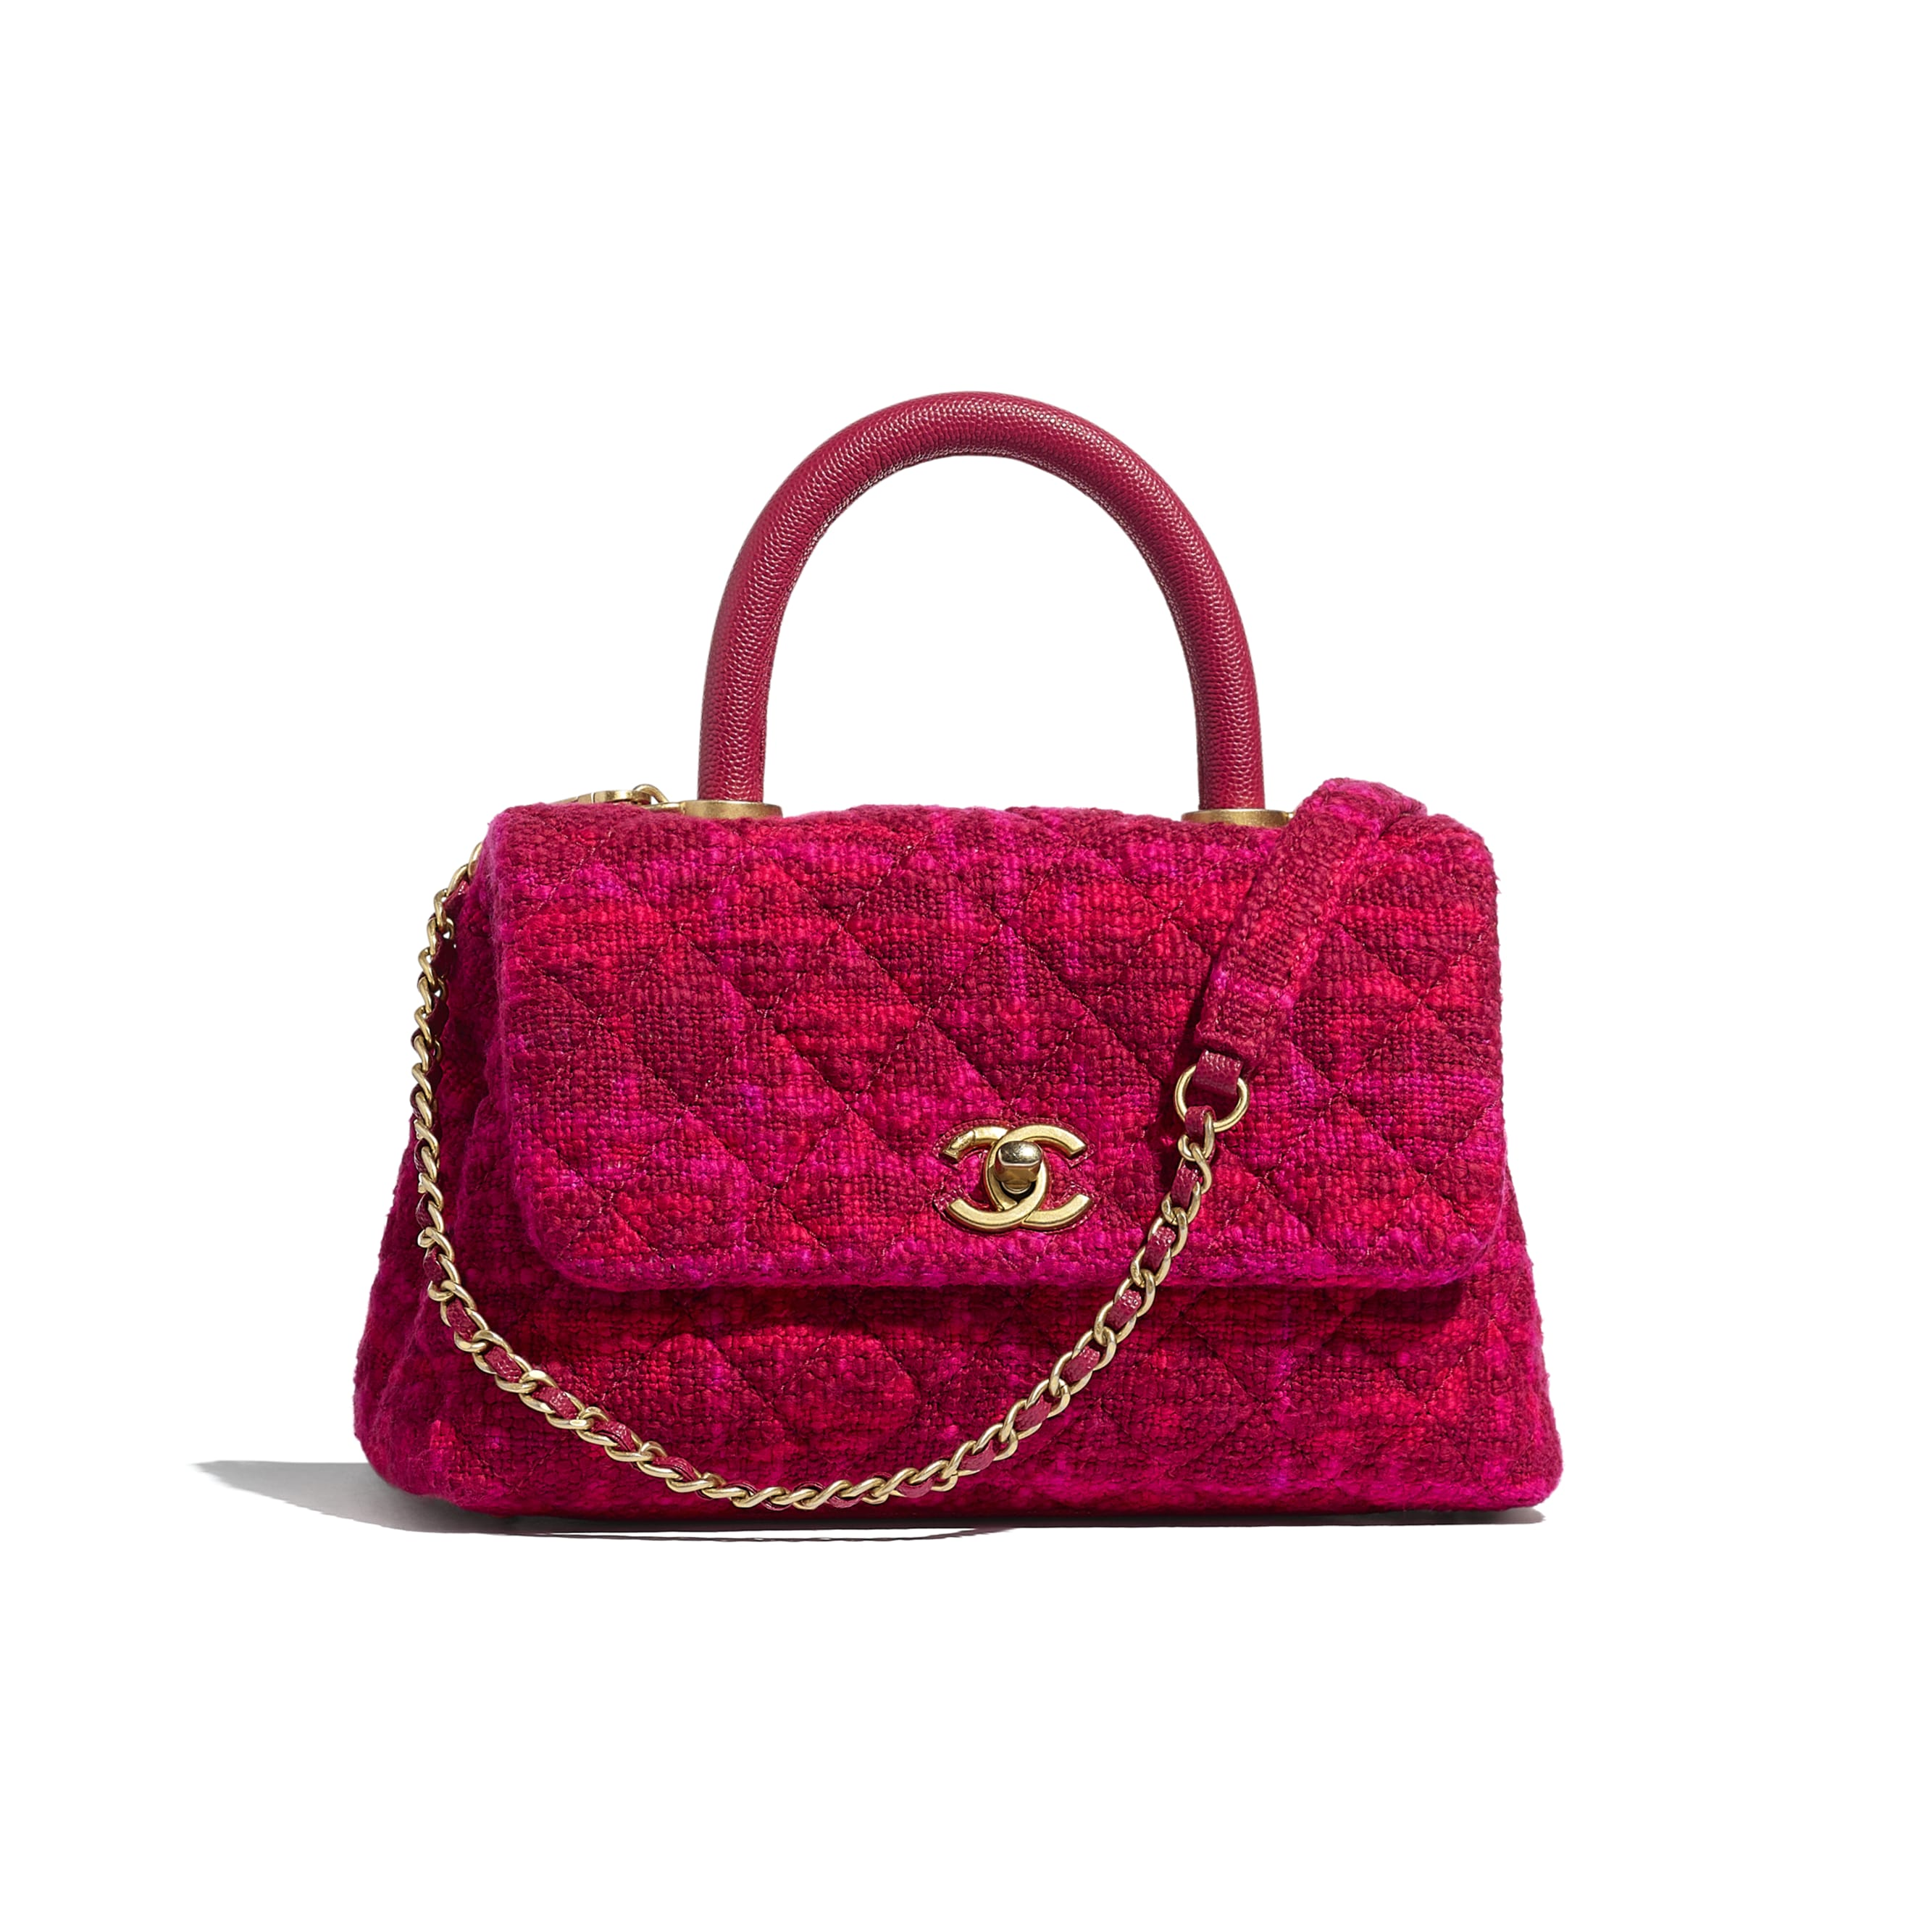 Small Flap Bag with Top Handle - Fuchsia & Red - Cotton Tweed, Grained Calfskin & Gold-Tone Metal - CHANEL - Default view - see standard sized version